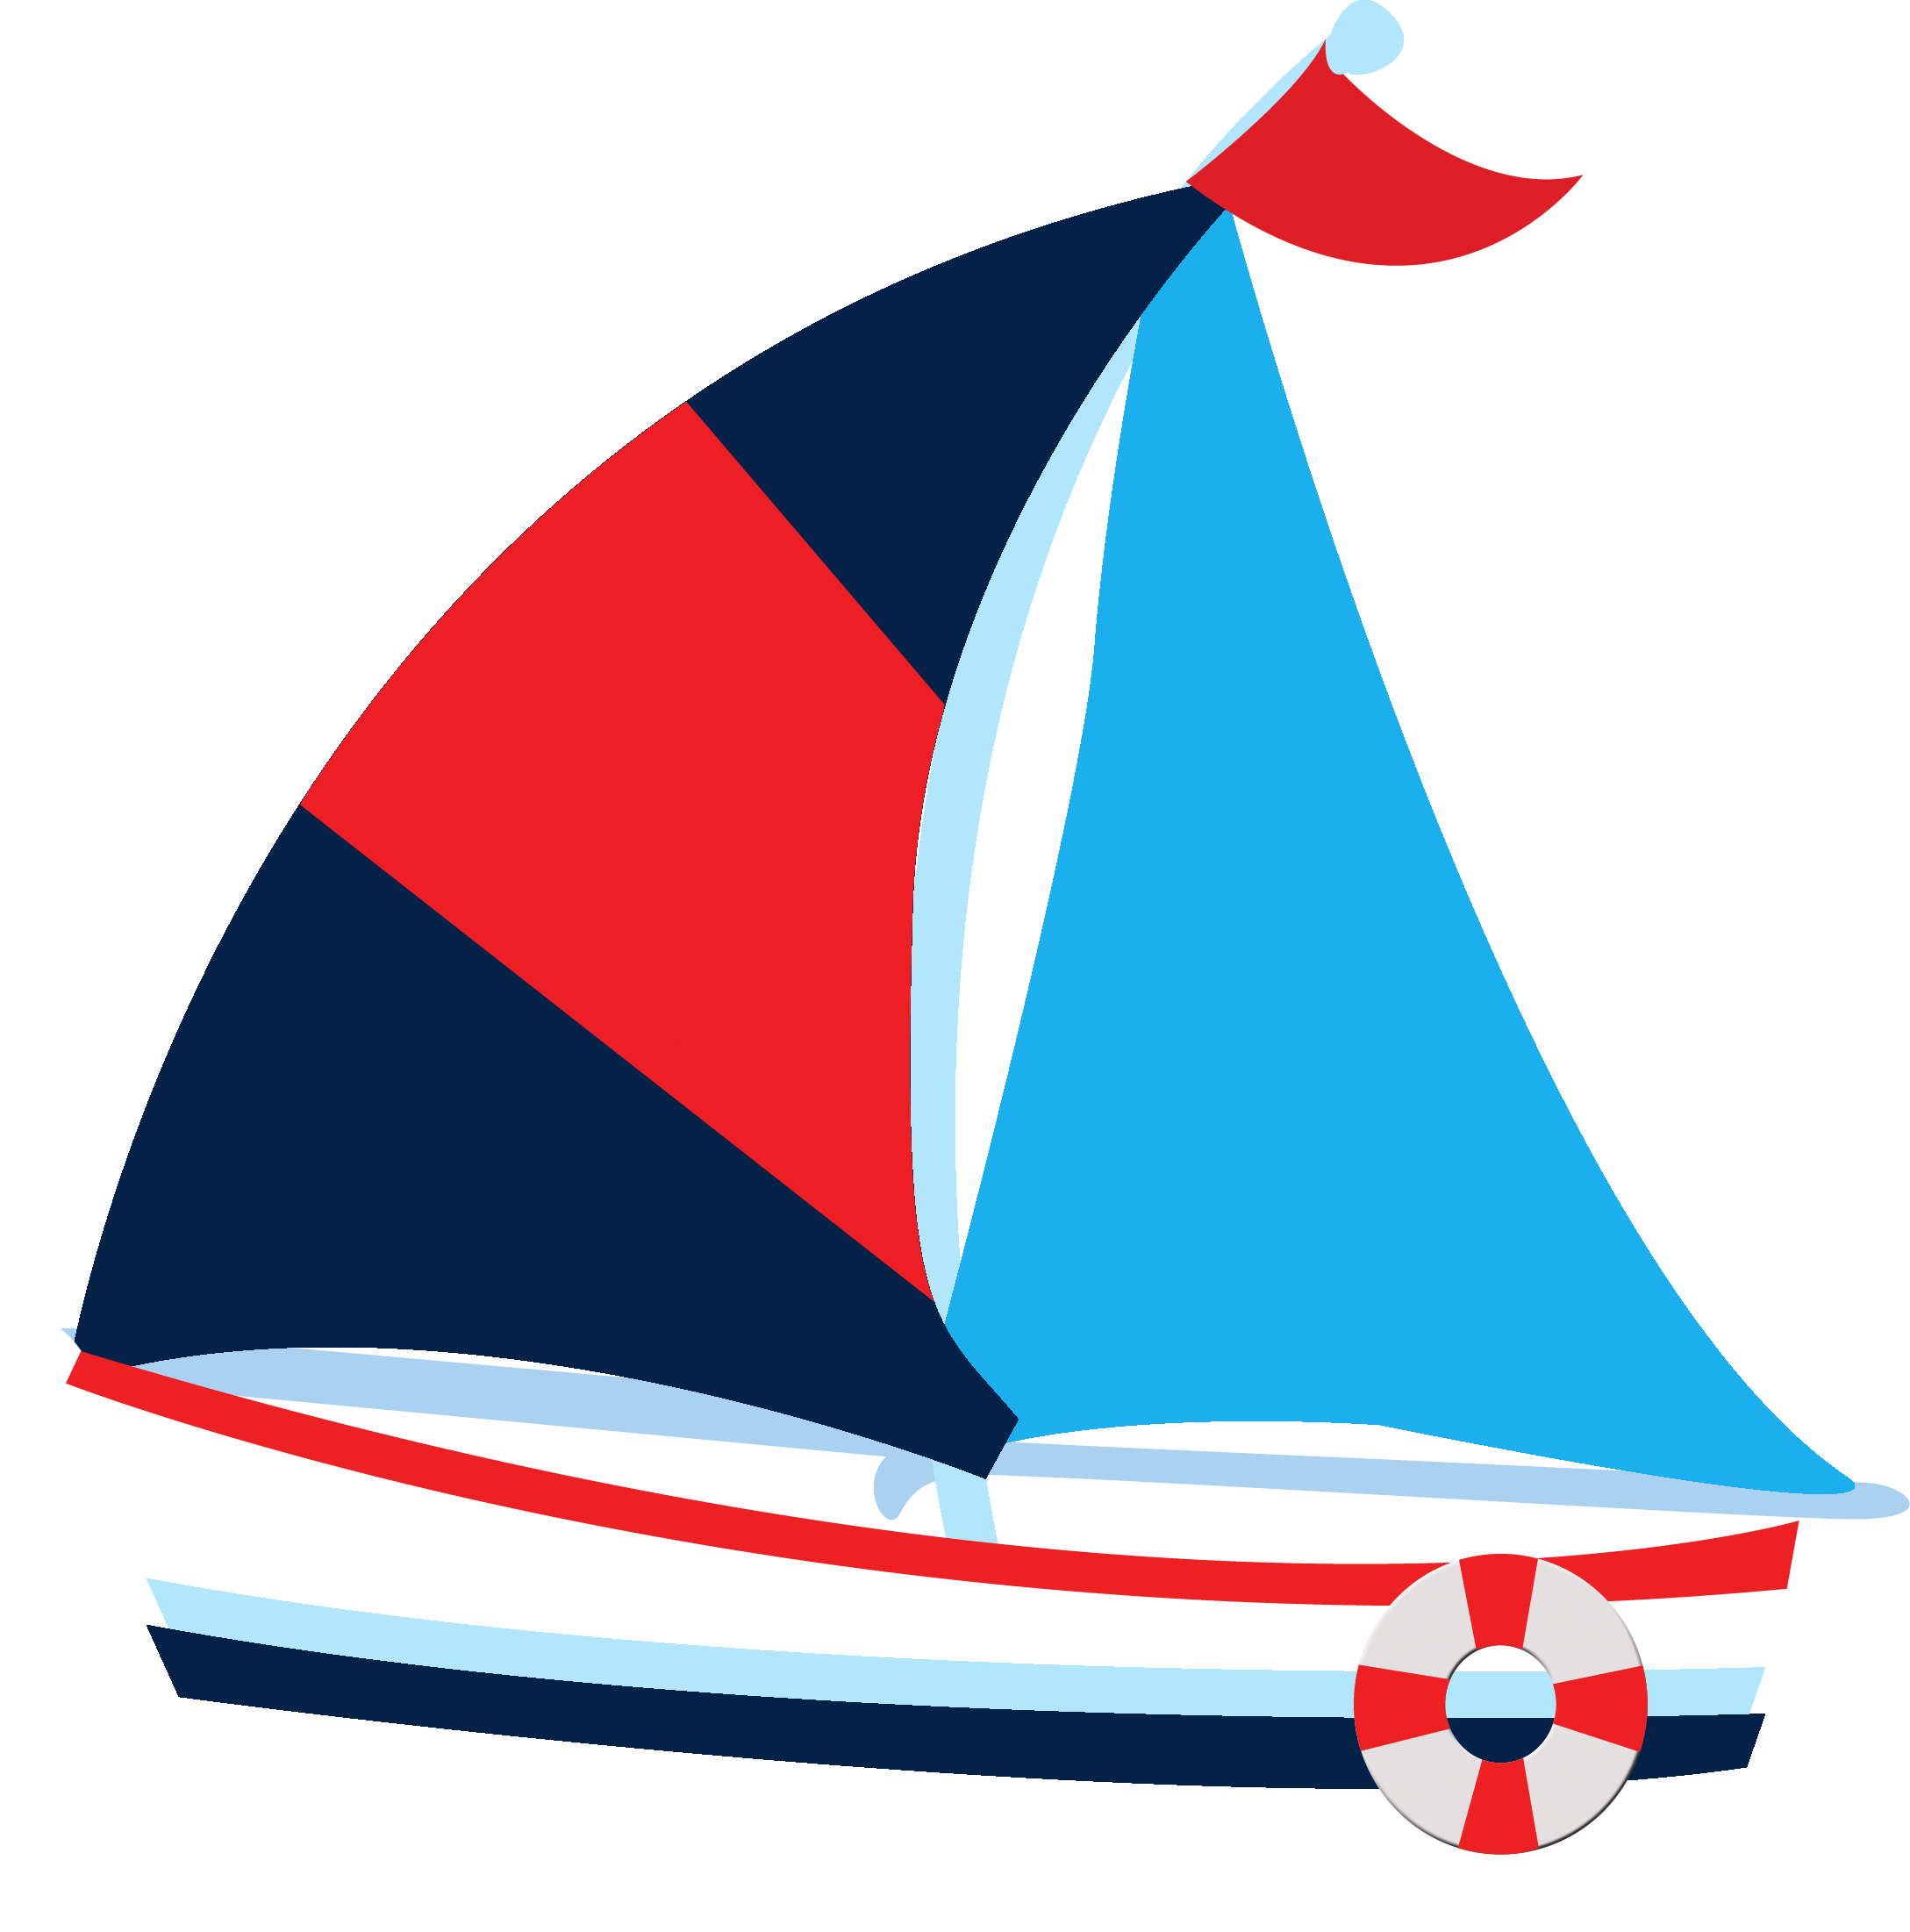 png library library Png sailing images pluspng. Yacht clipart transparent background.